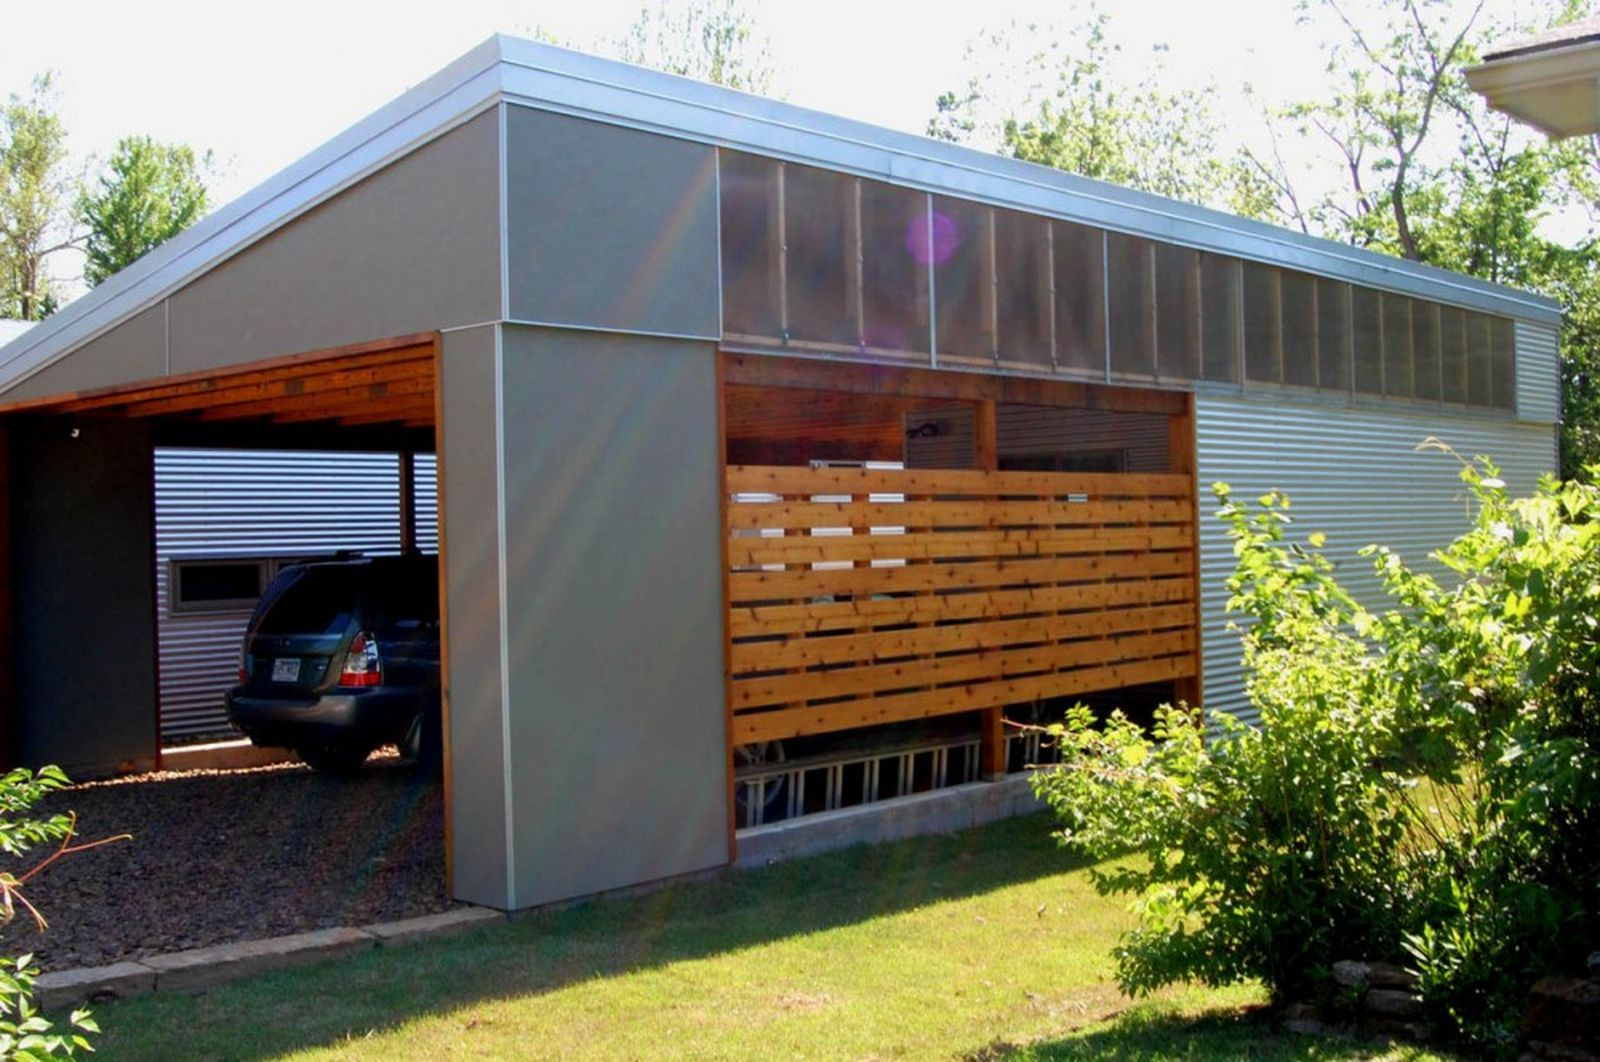 What Does Garage Mean: Refreshing And Creative Way To Partially Enclose The